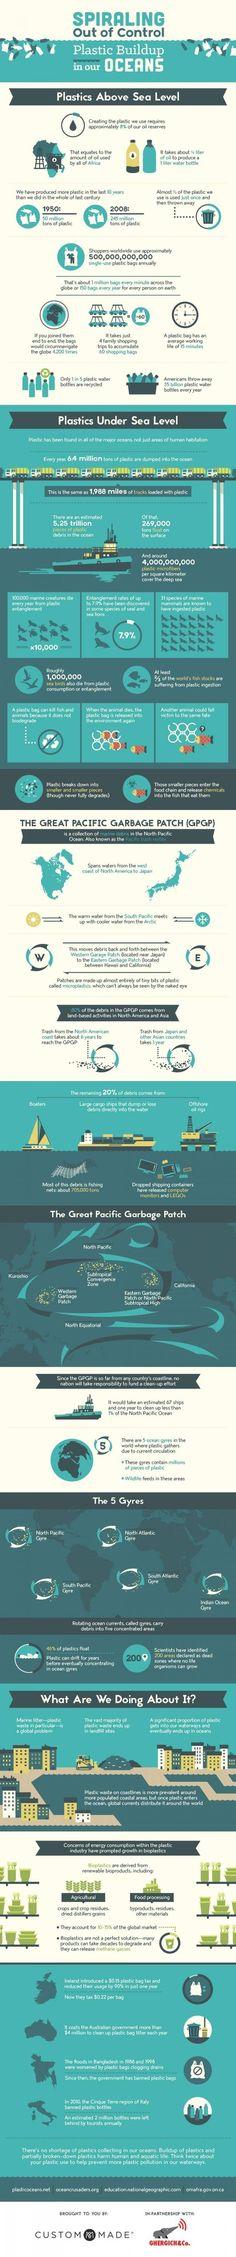 Disturbing infographic shows how plastic is clogging our oceans. #sustainability #oceans